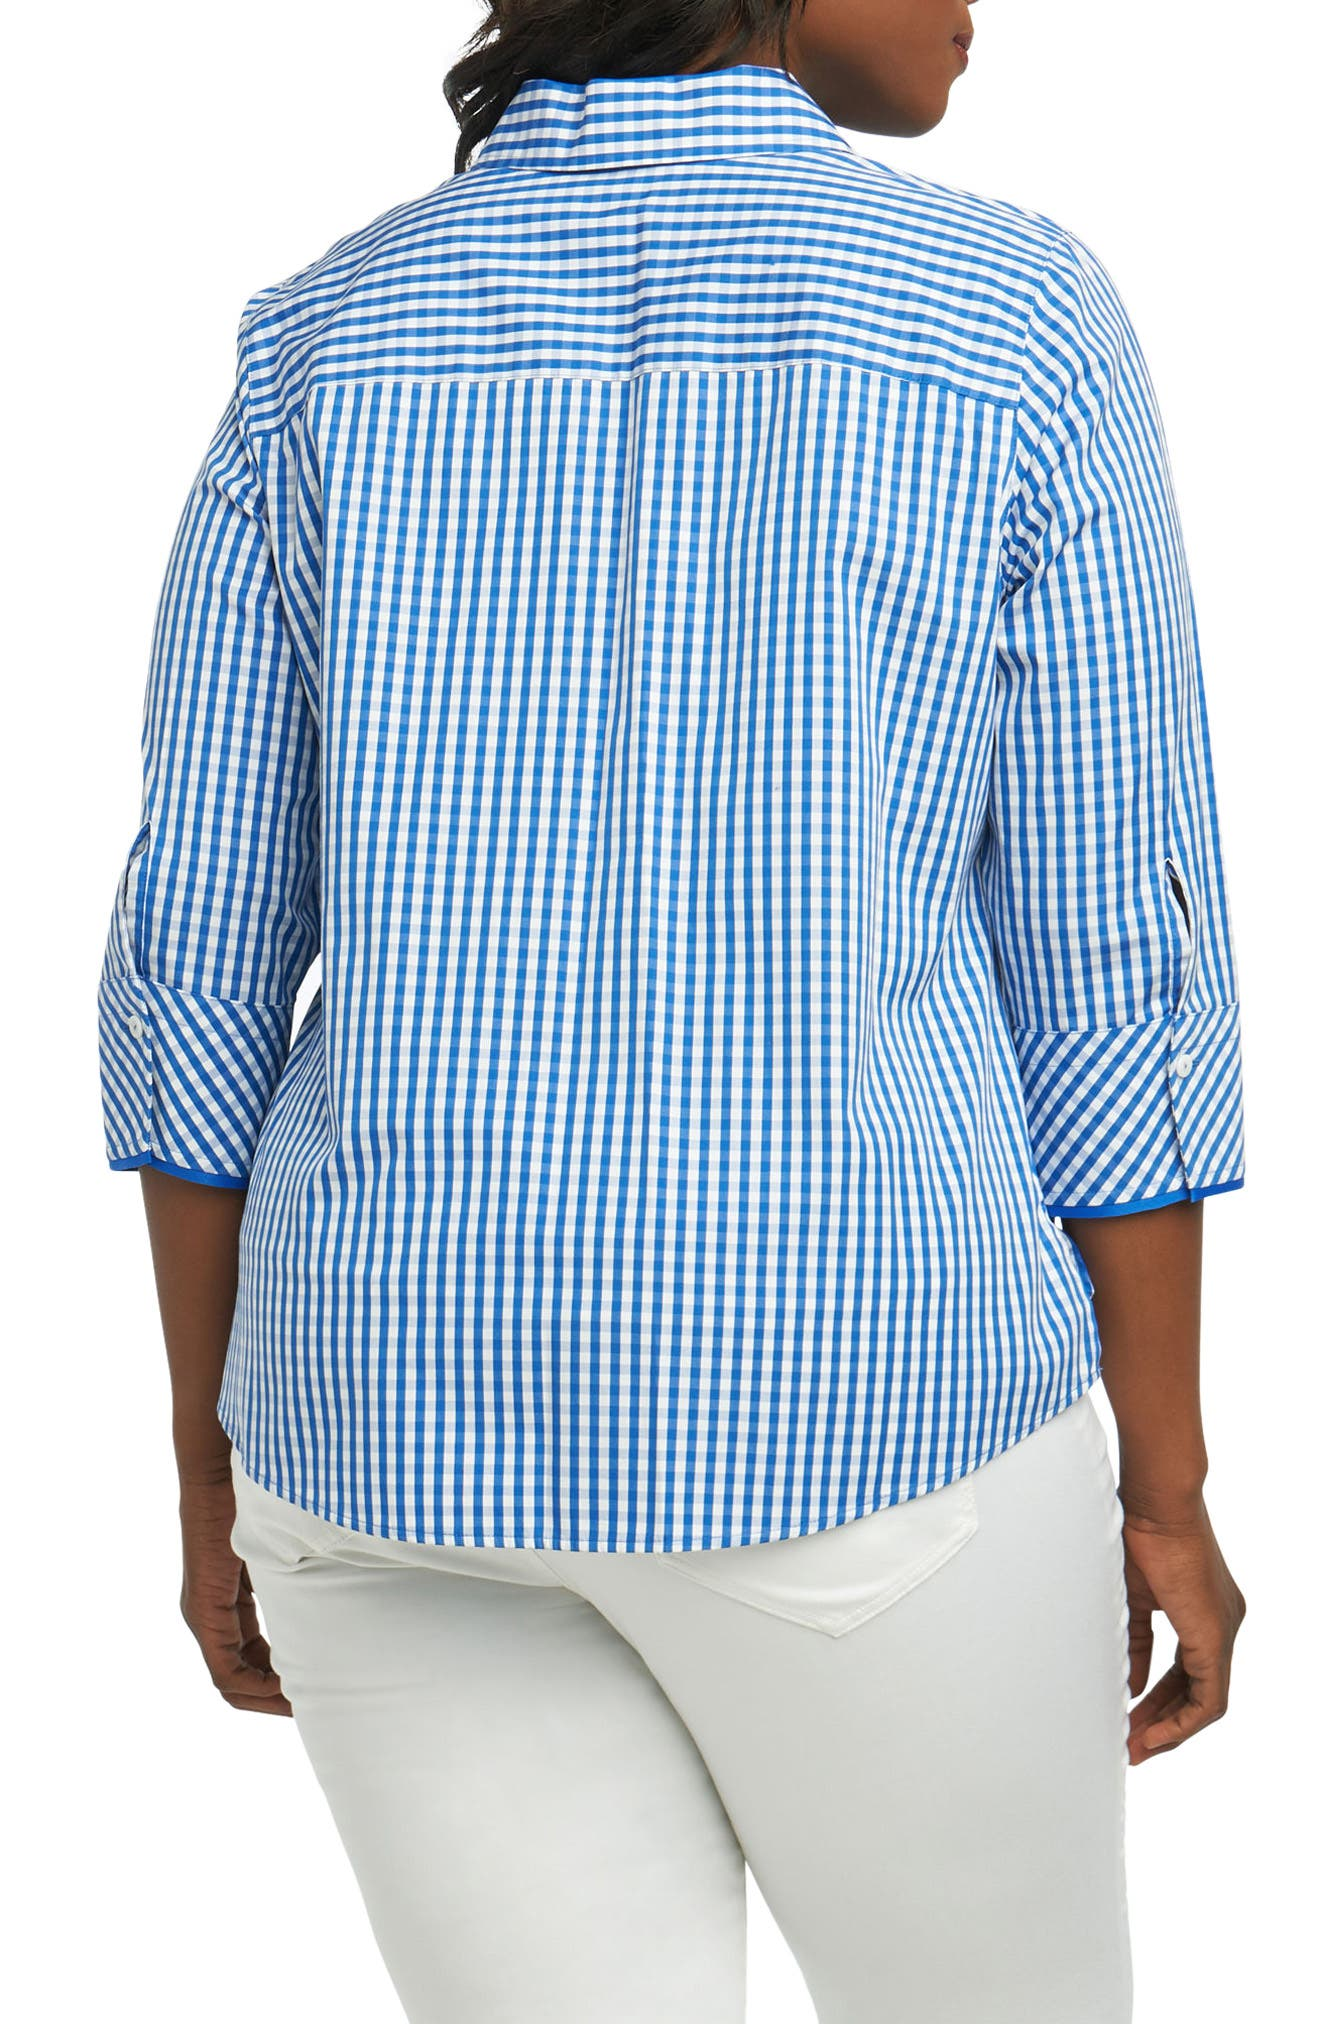 Mary Gingham Wrinkle Free Shirt,                             Alternate thumbnail 2, color,                             Lapis Blue